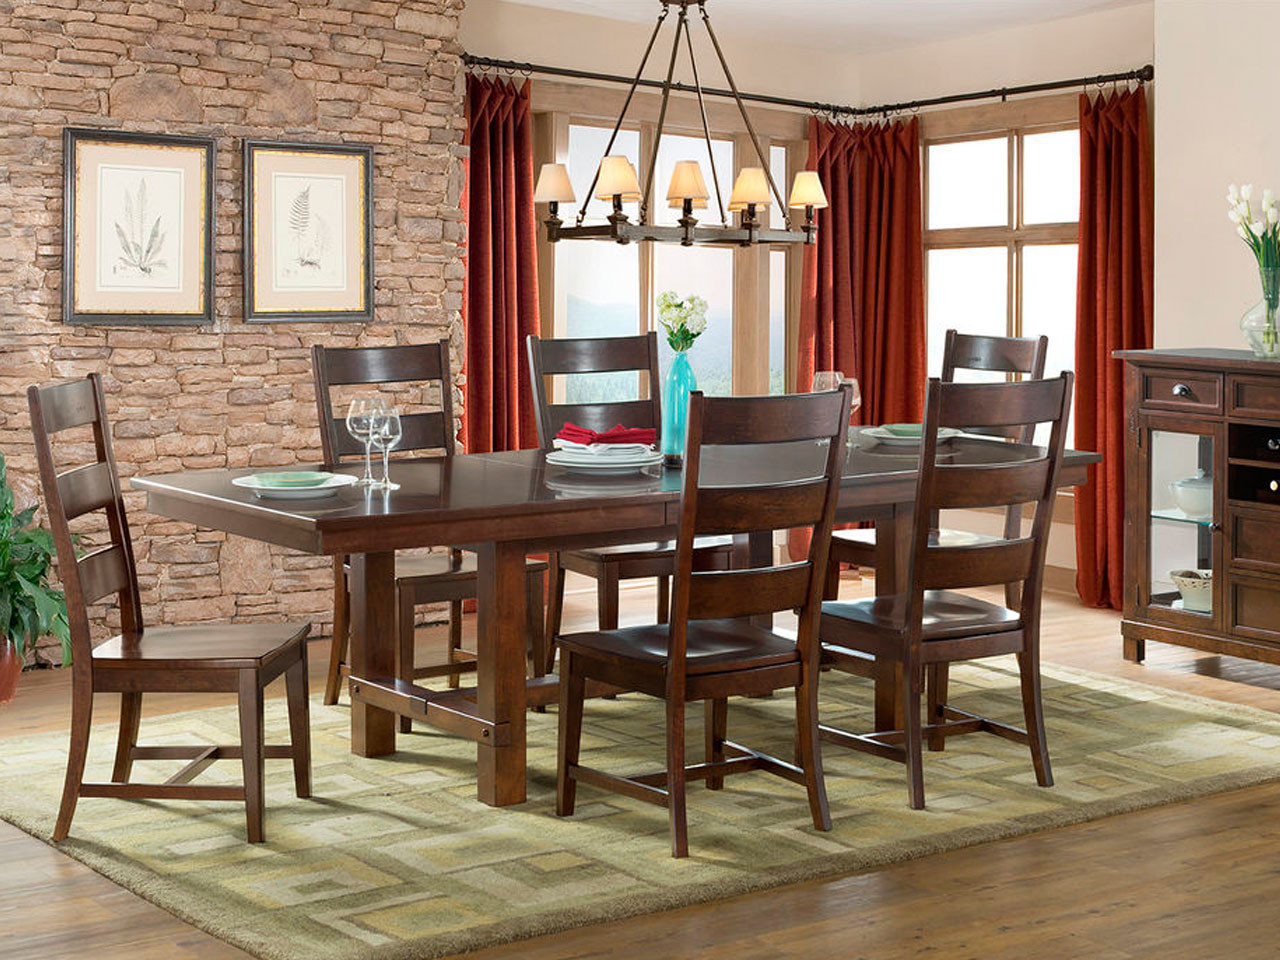 Star Valley Ladder Back Side Chair Table Set Collection By Intercon Offers Quality